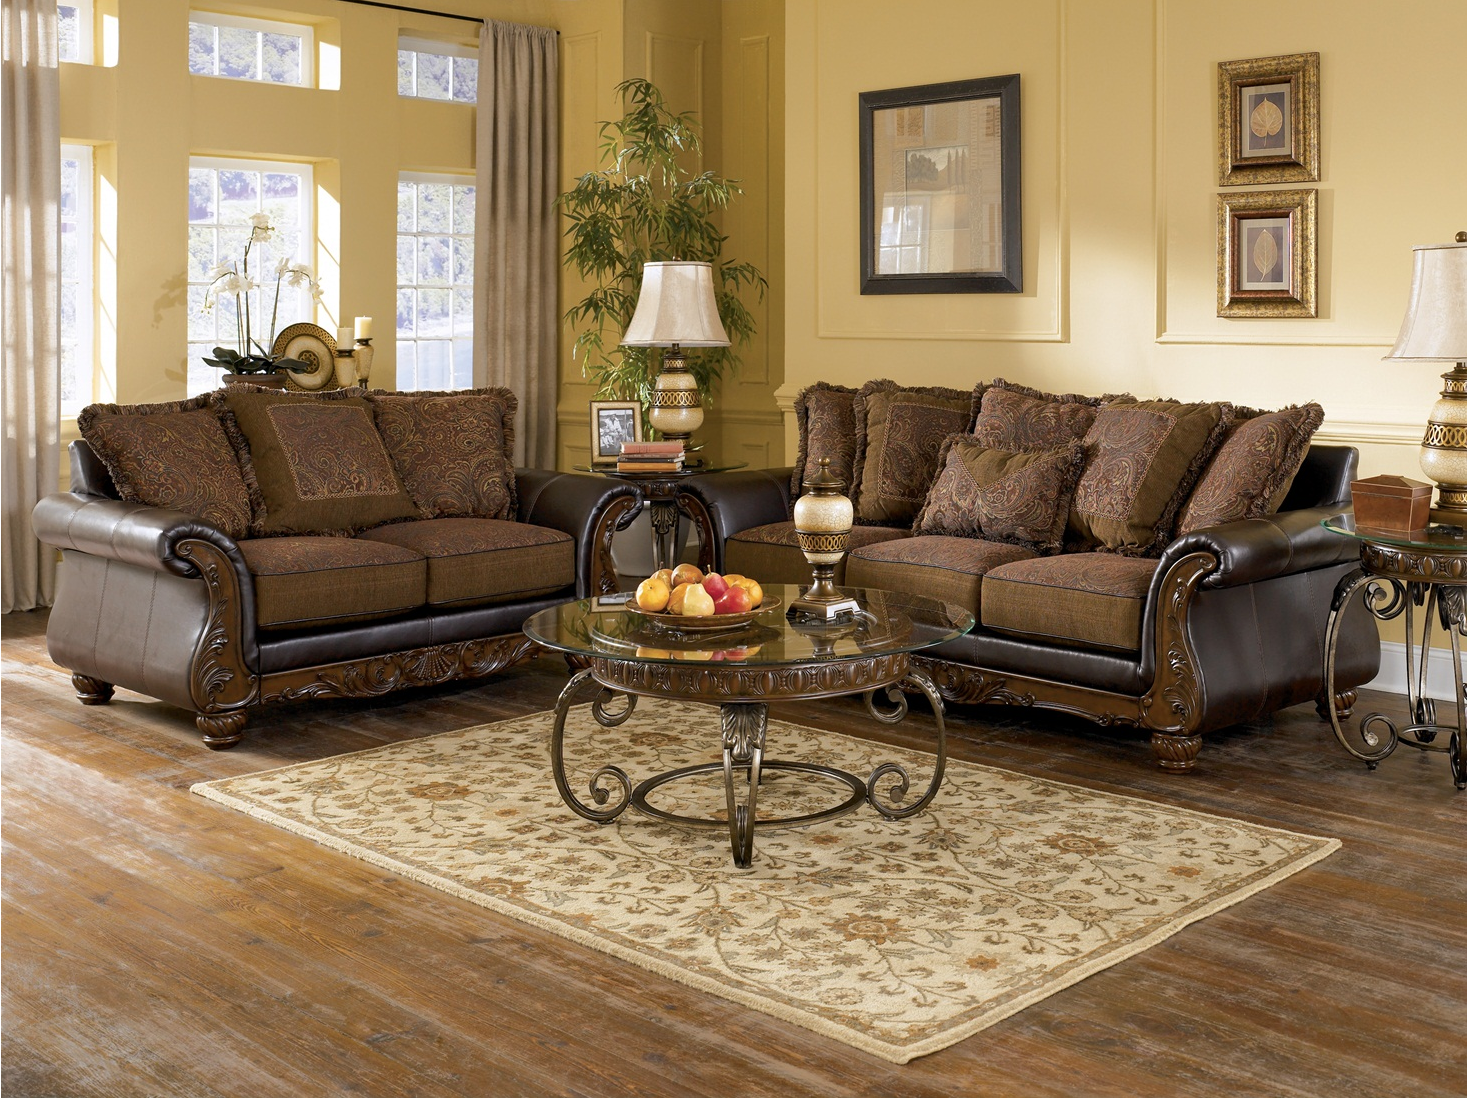 Wilmington traditional living room furniture set by ashley for Living room farnichar